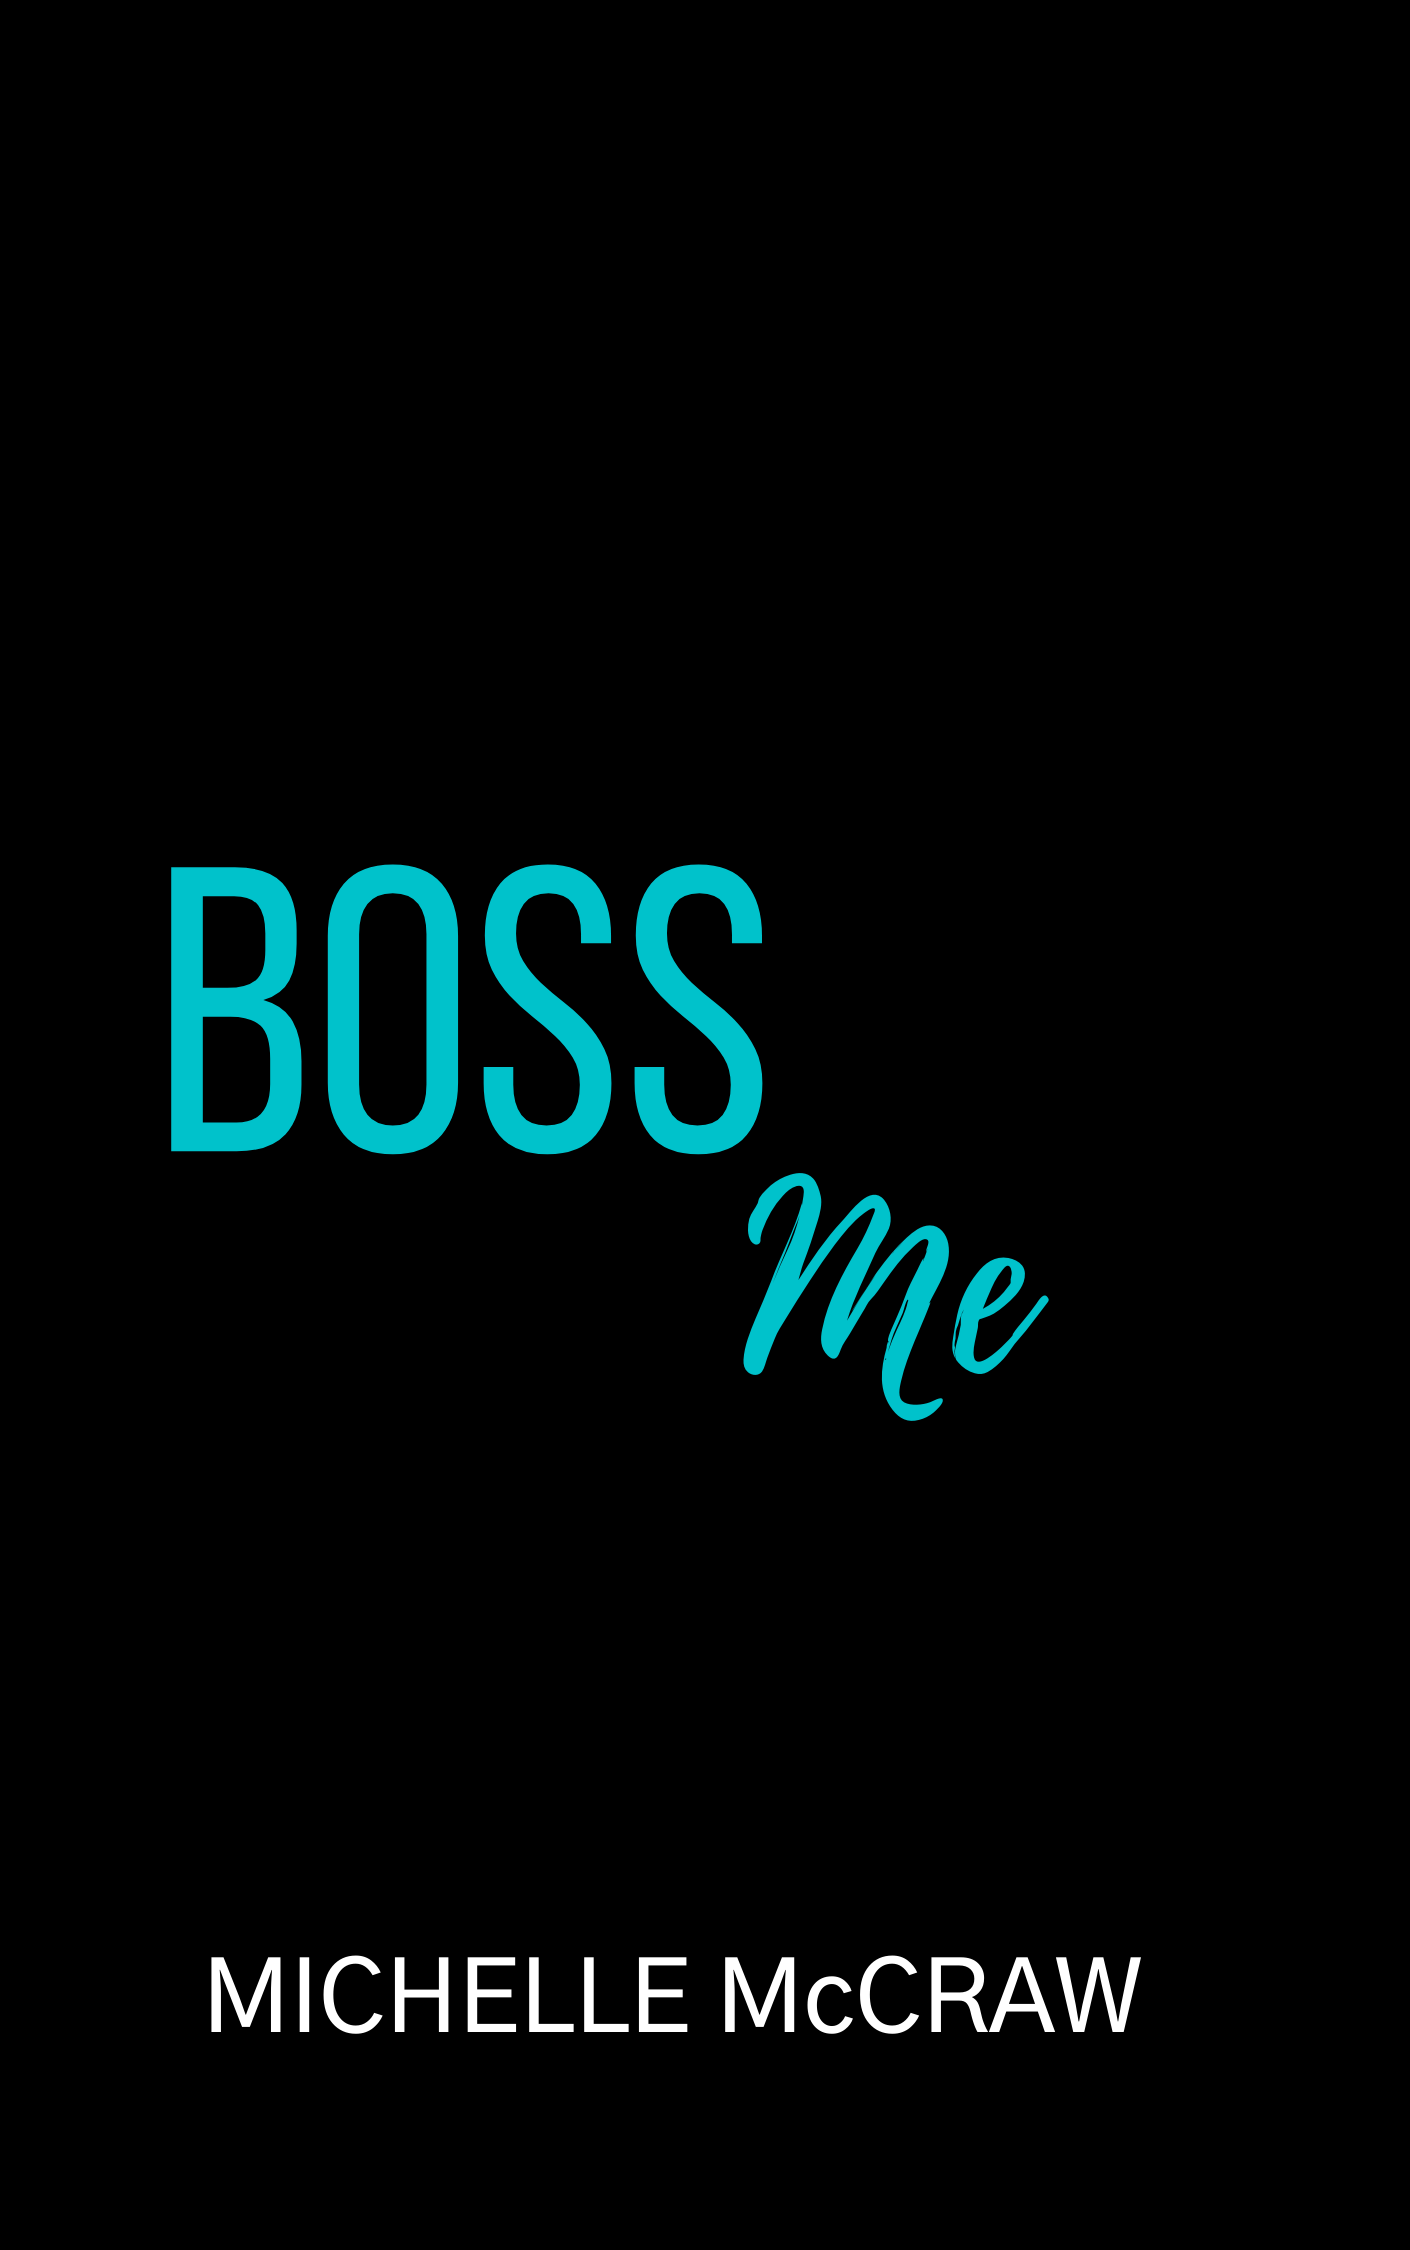 Placeholder cover for Boss Me by Michelle McCraw